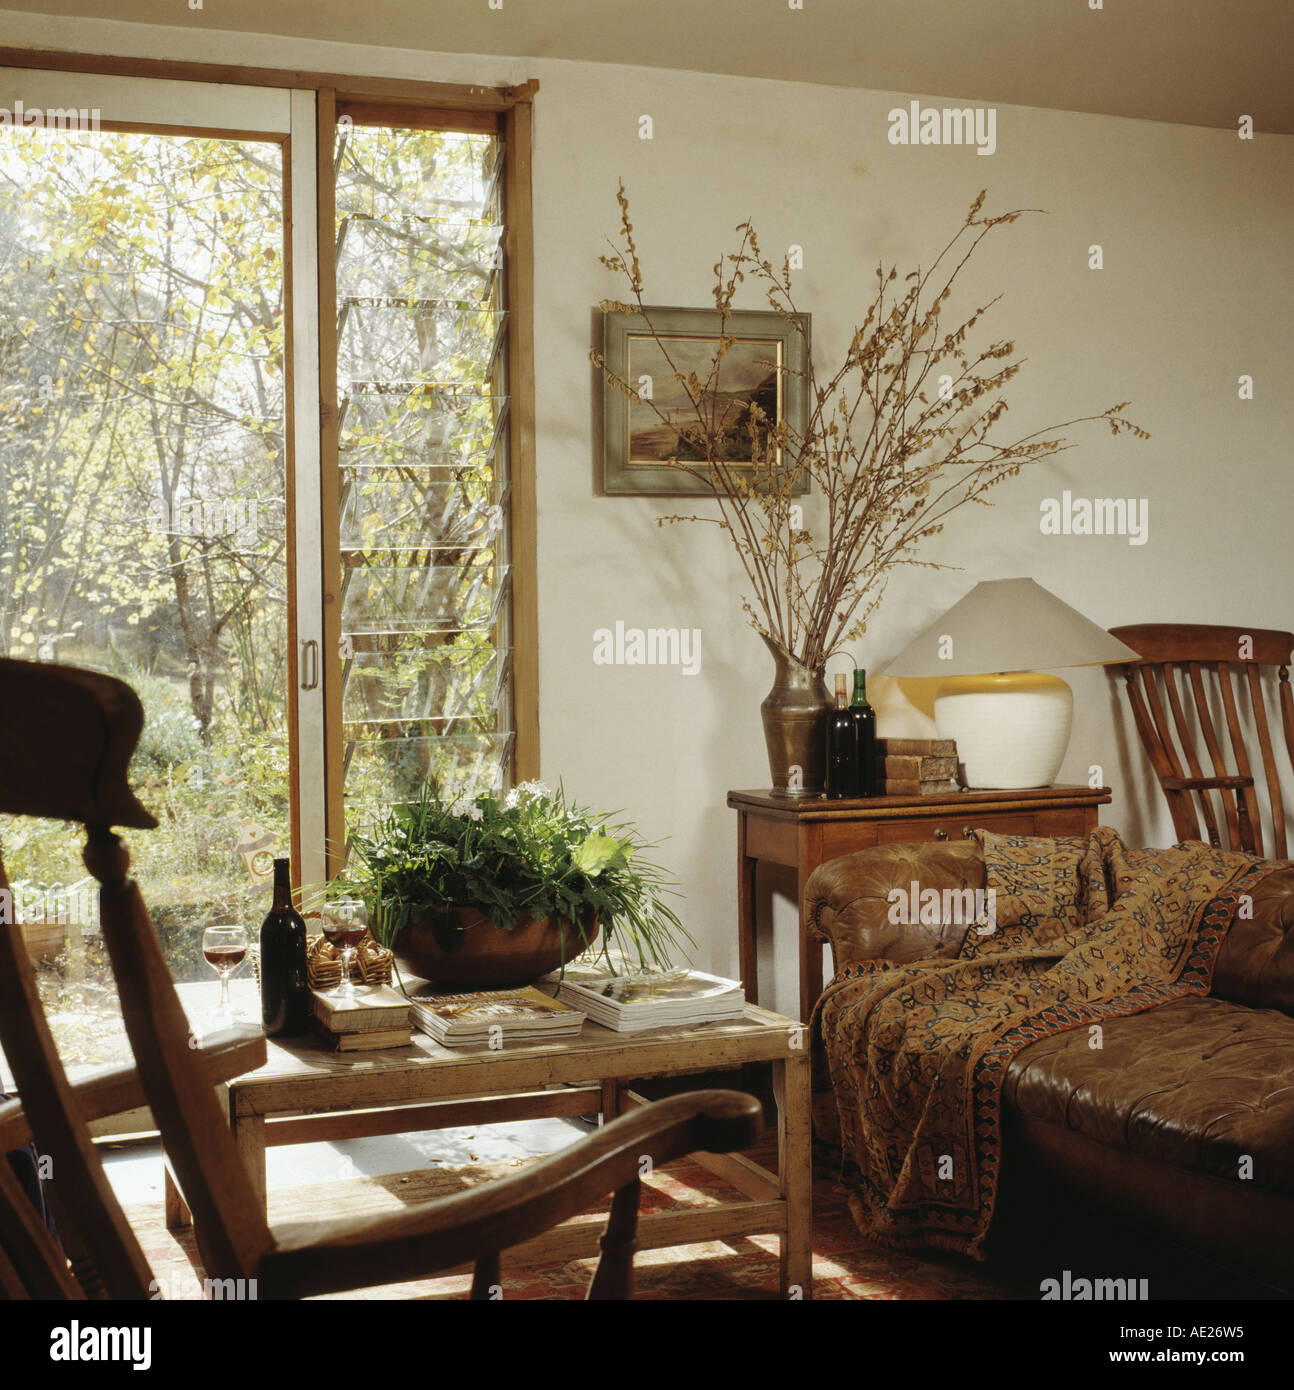 Houseplants in bowl on simple wooden table in front of sliding glass door in country living room with old brown leather sofa